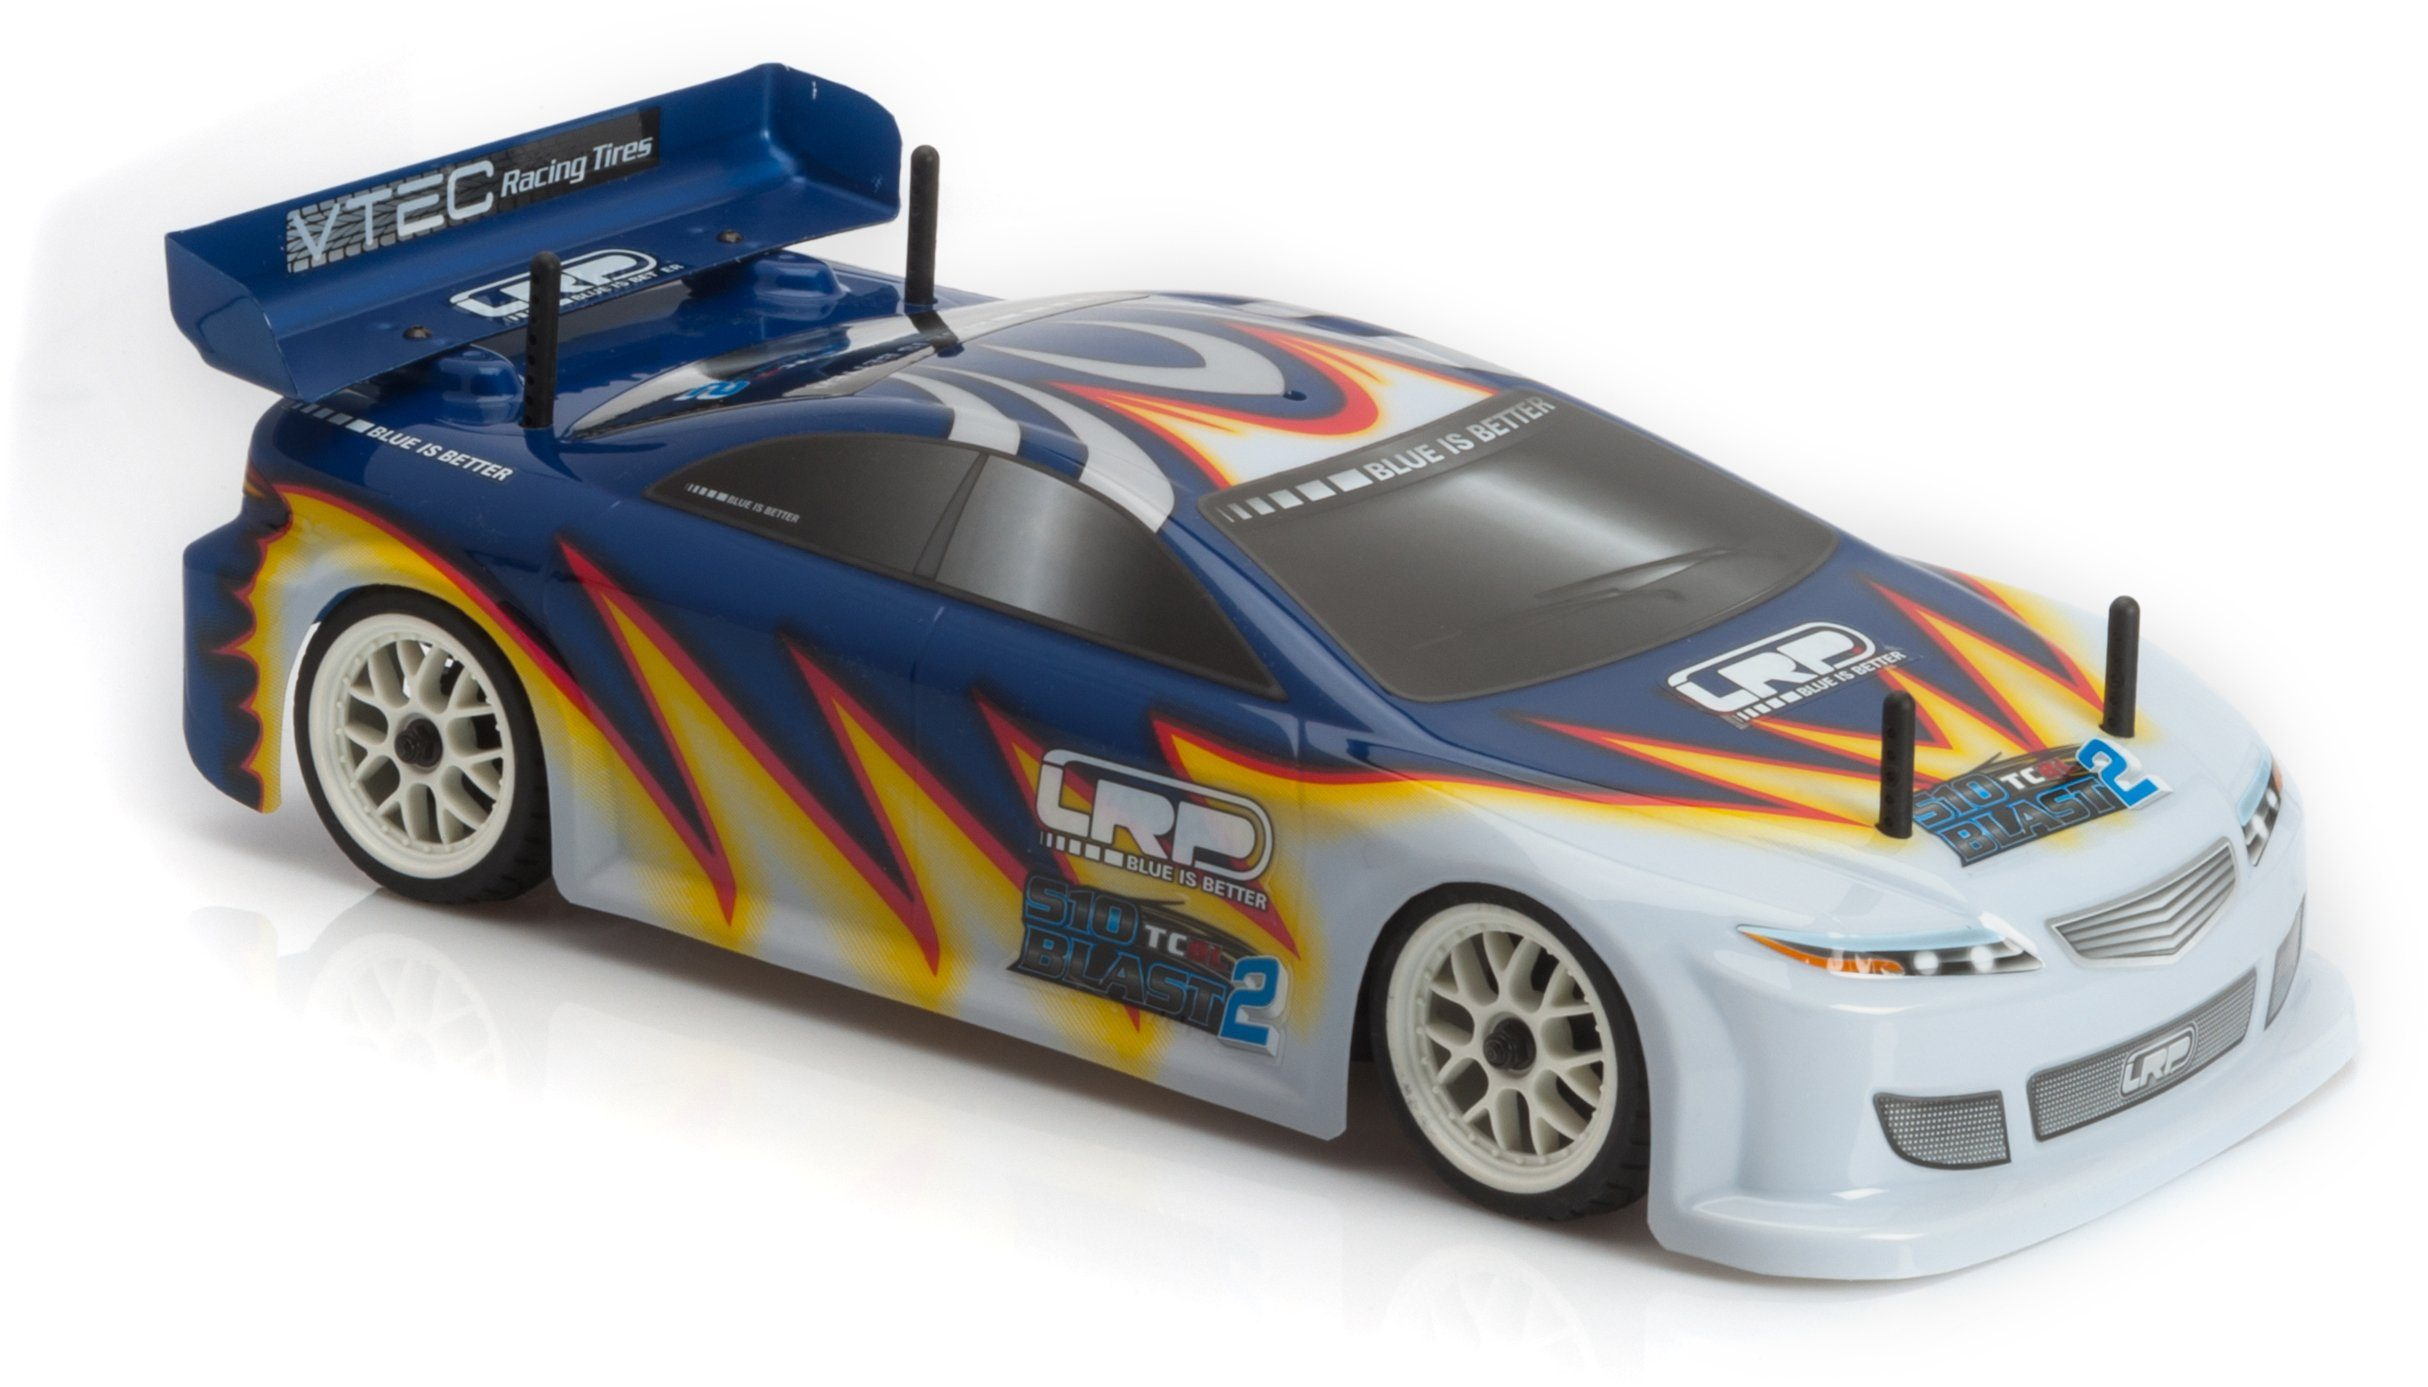 LRP RC Auto, »S10 Blast TC 2 Brushless Elektro Touring Car 1:10 2,4 GHz«